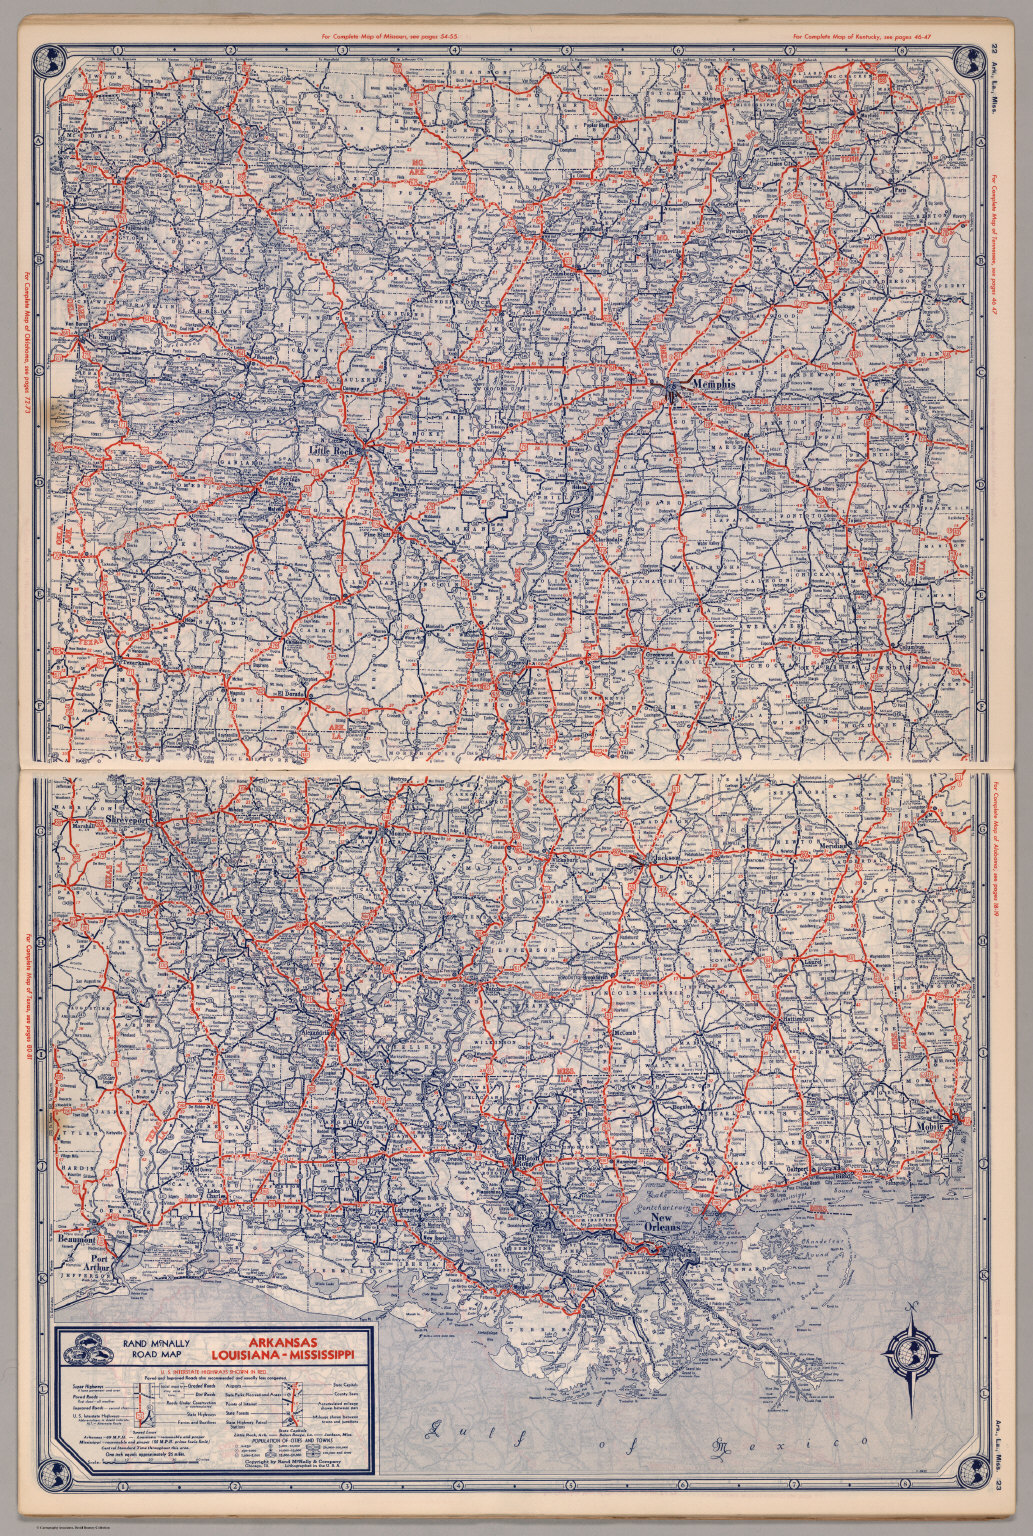 Road Map Of Arkansas Louisiana Mississippi David Rumsey - Mississippi highway map